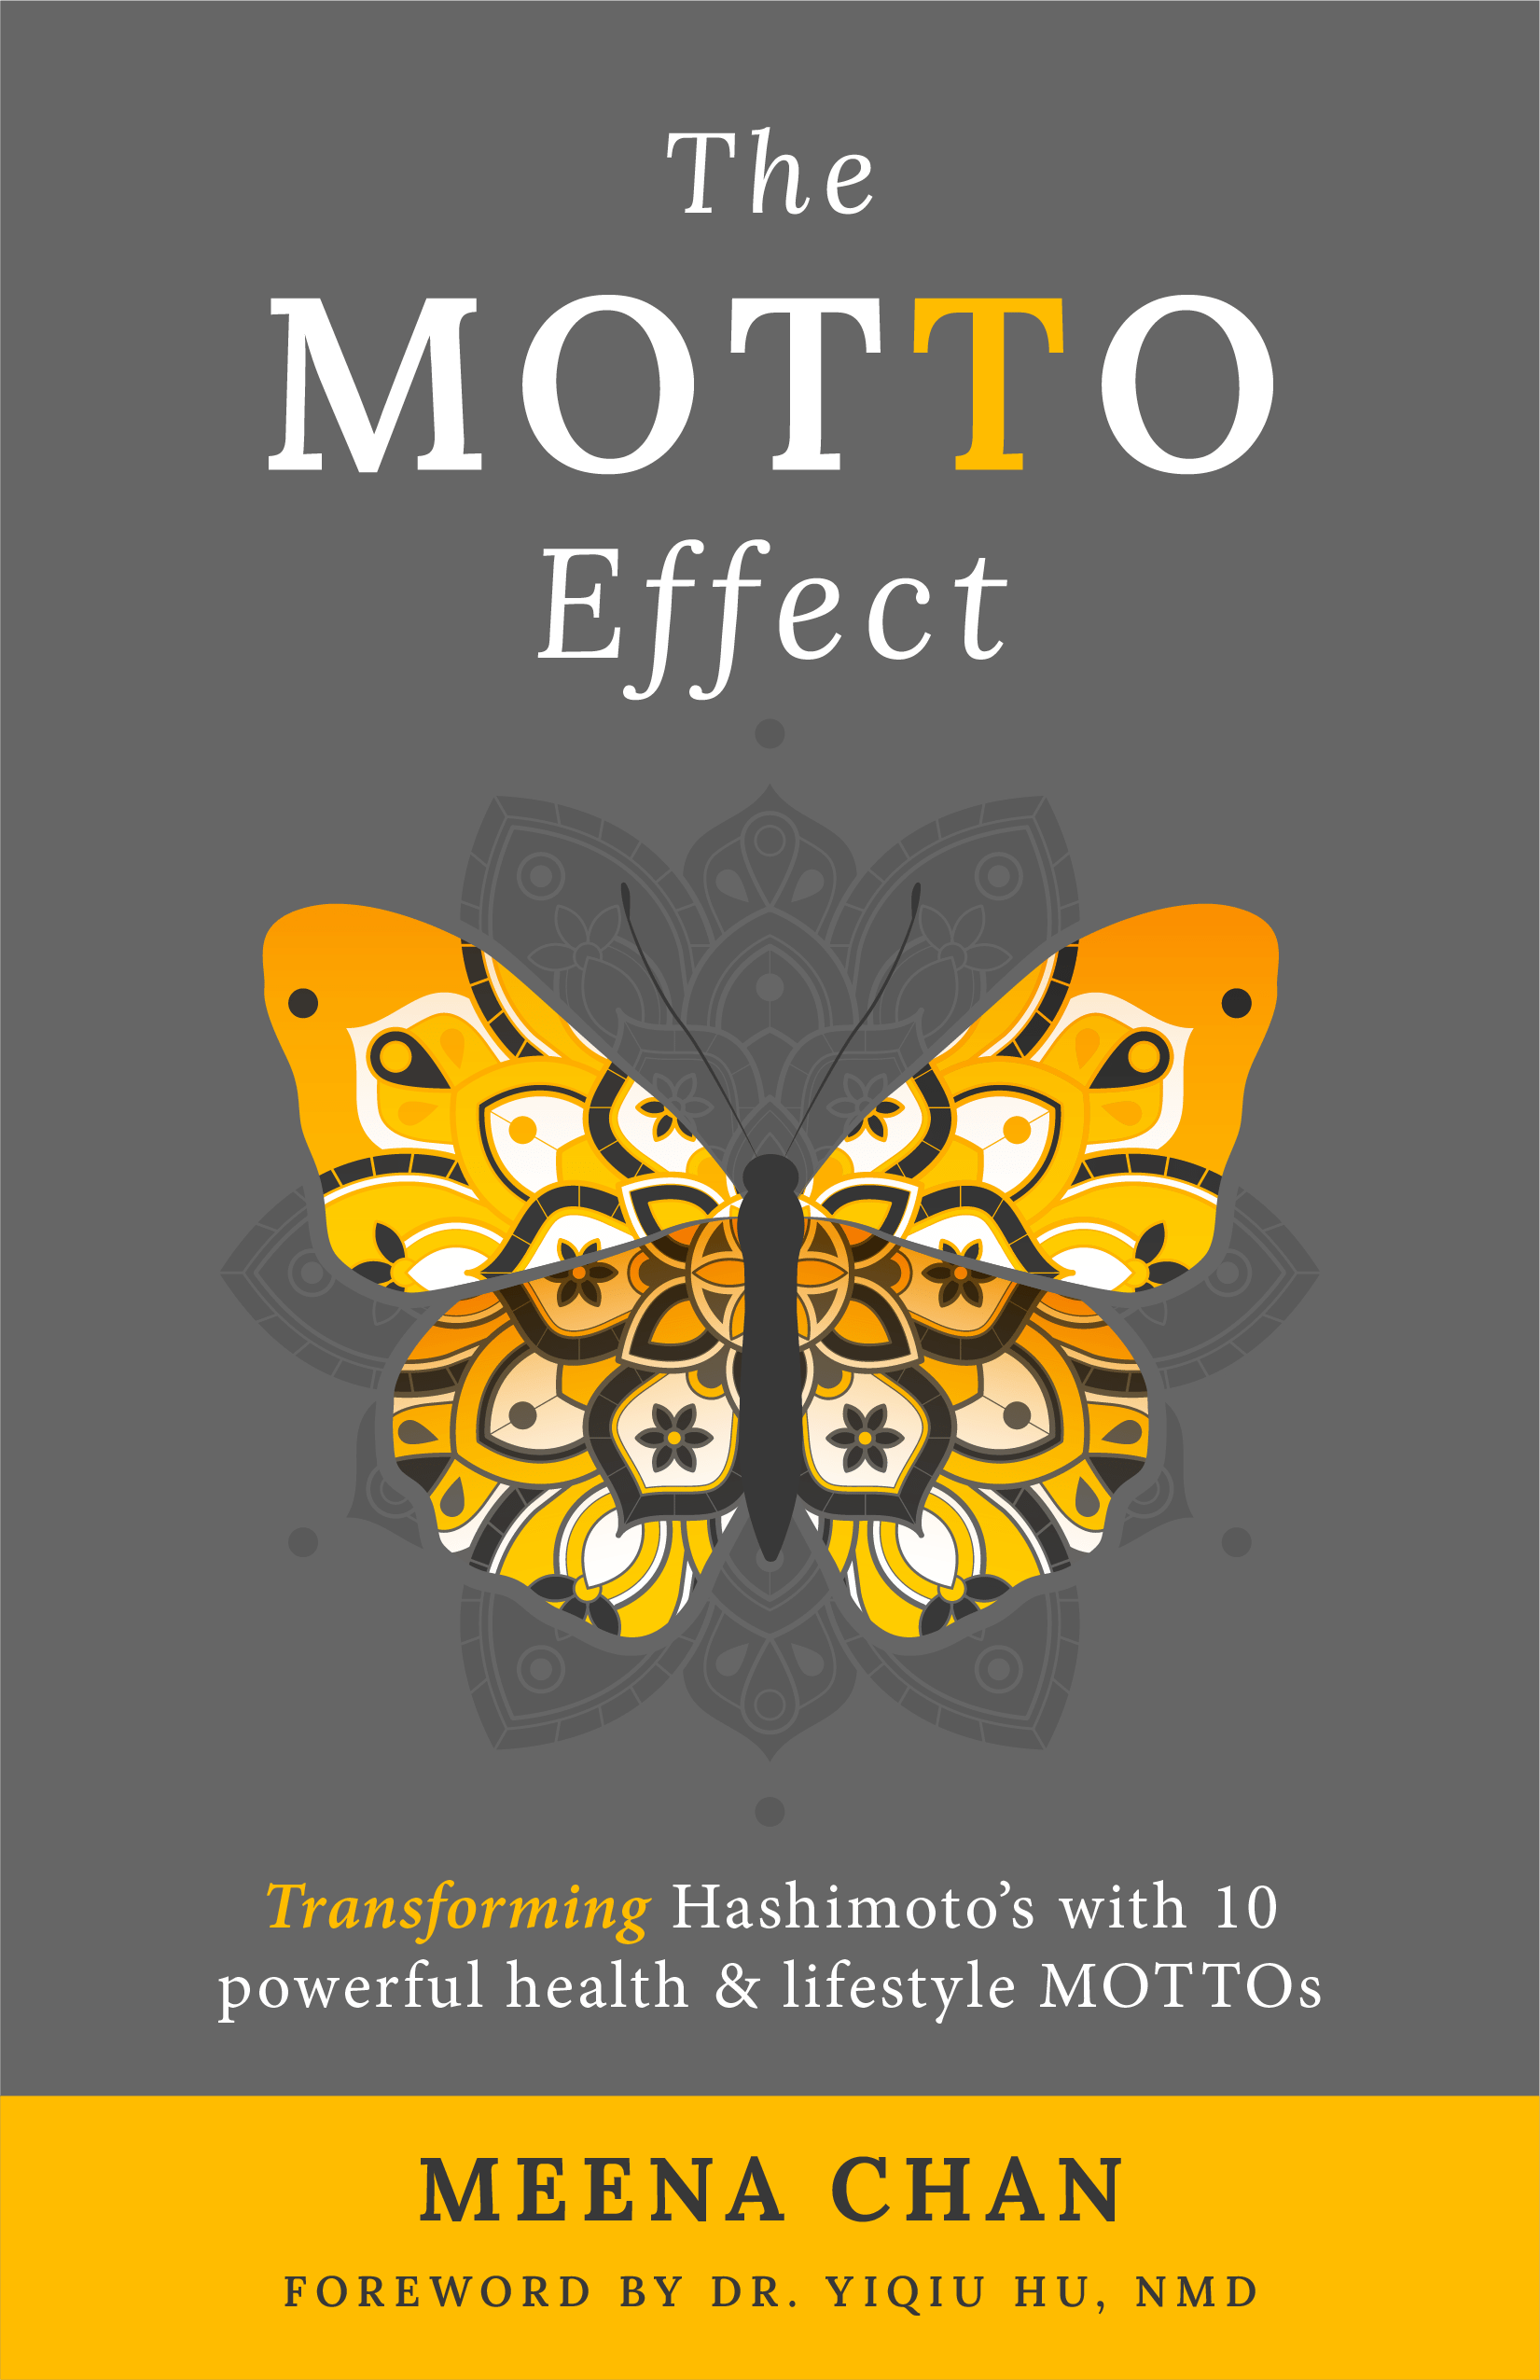 The-MOTTO-Effect-Final-Book-Cover-1-1.png